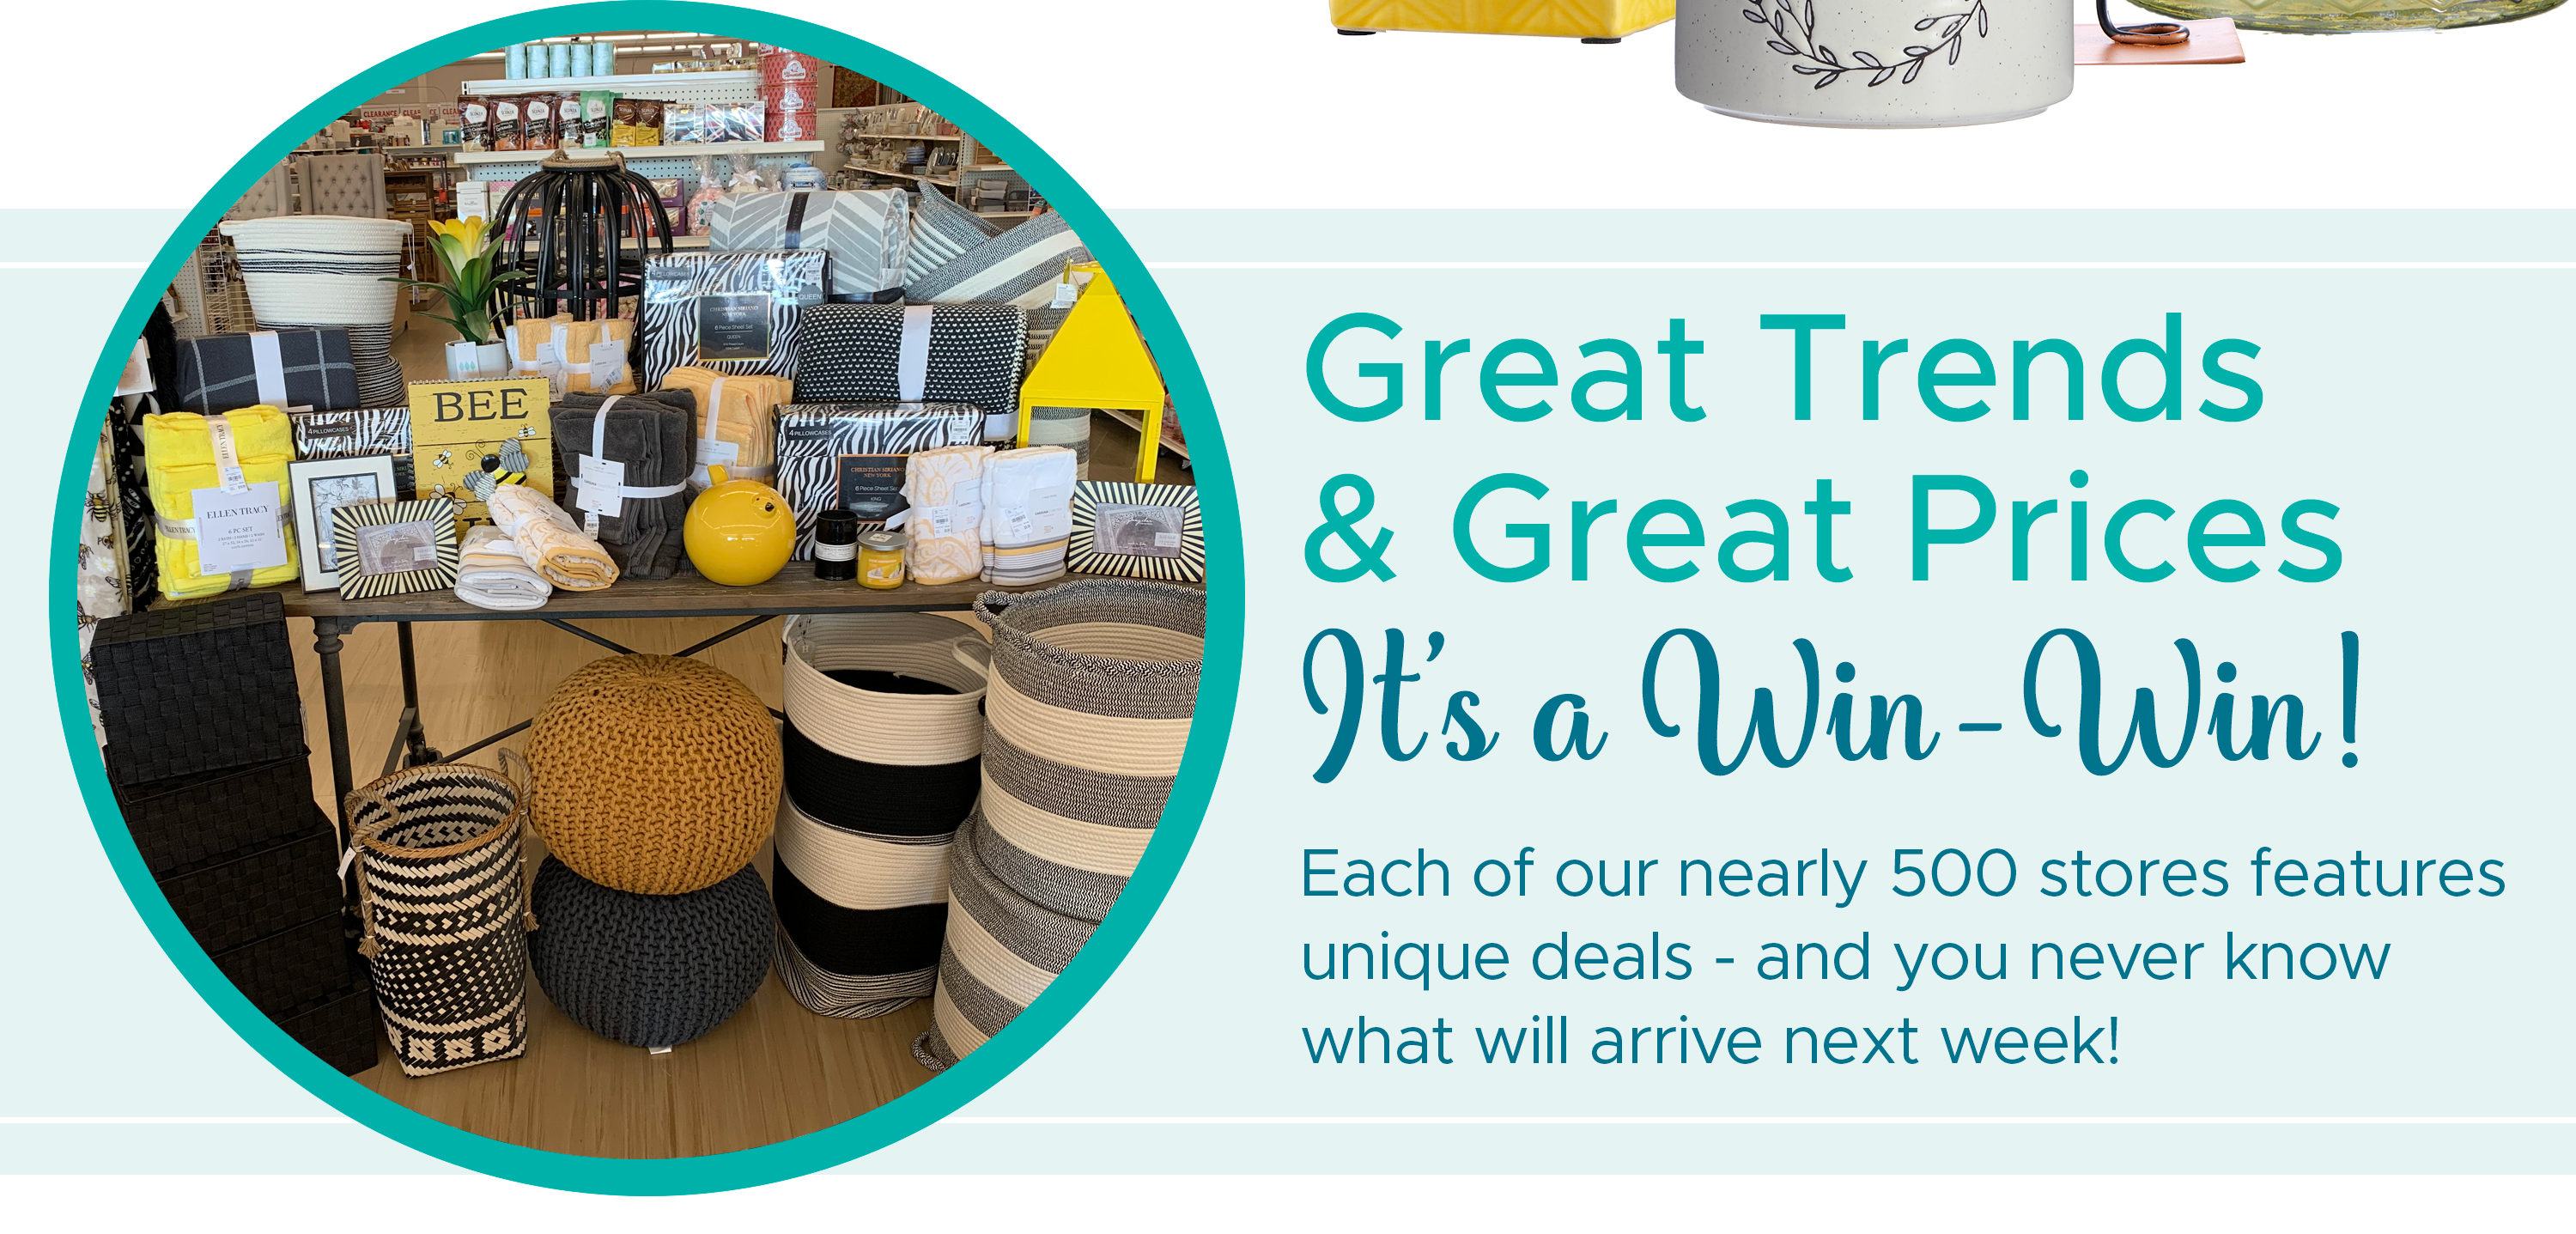 Great Trends & Great Prices (It's a Win-Win!) - Each of our nearly 500 stores features unique deals - and you never know what will arrive next week!